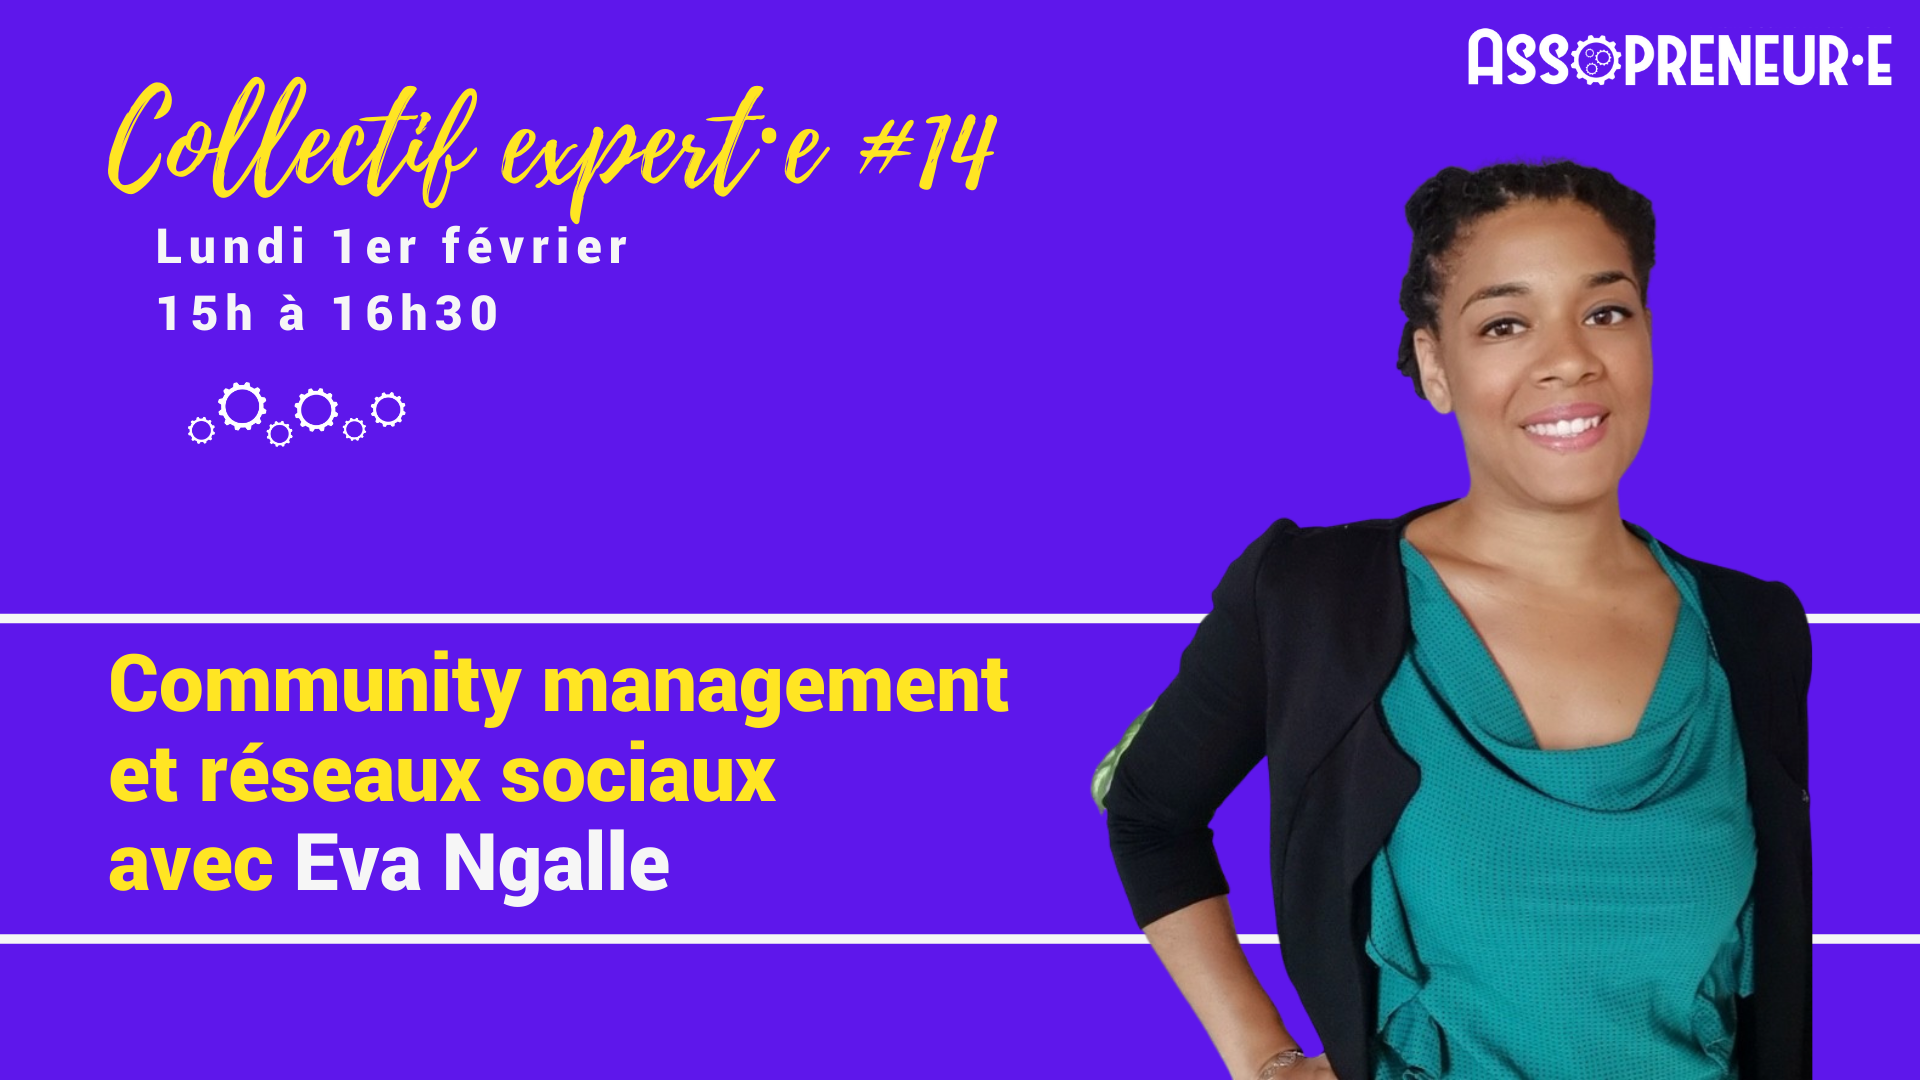 Collectif expert 14 Eva Ngalle